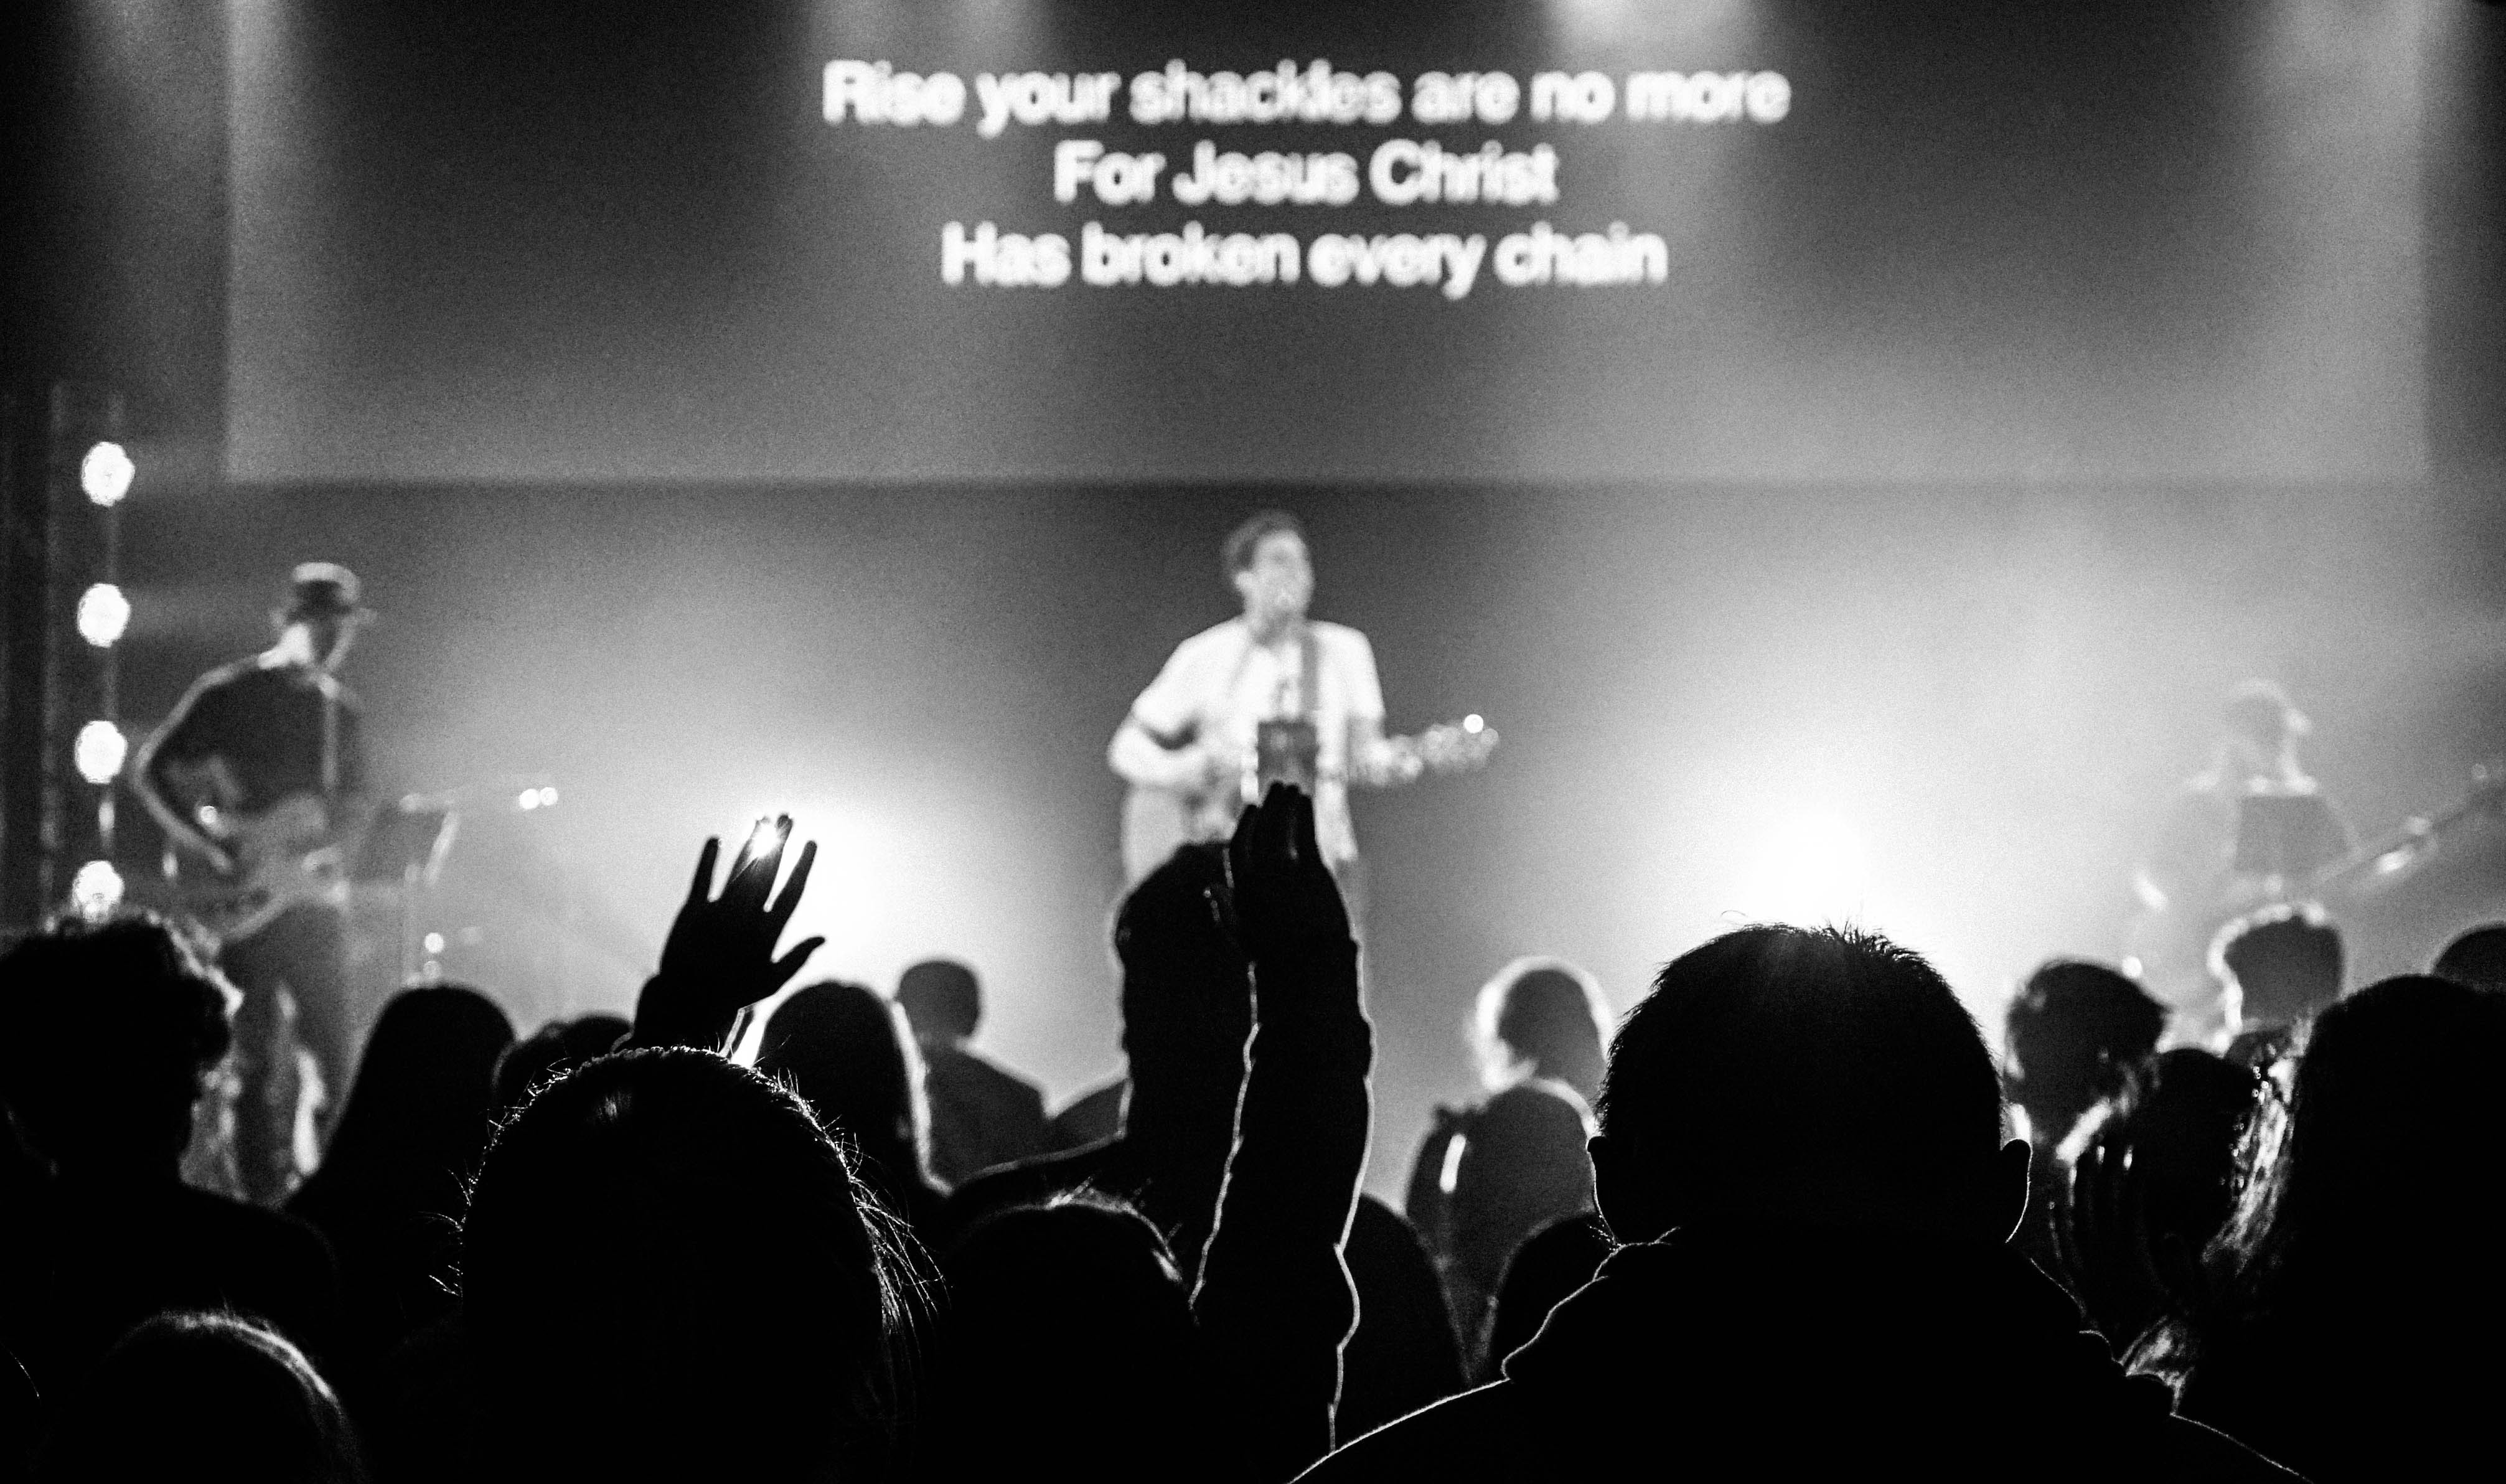 Silhouettes of an audience holding their arms up during a Christian rock concert